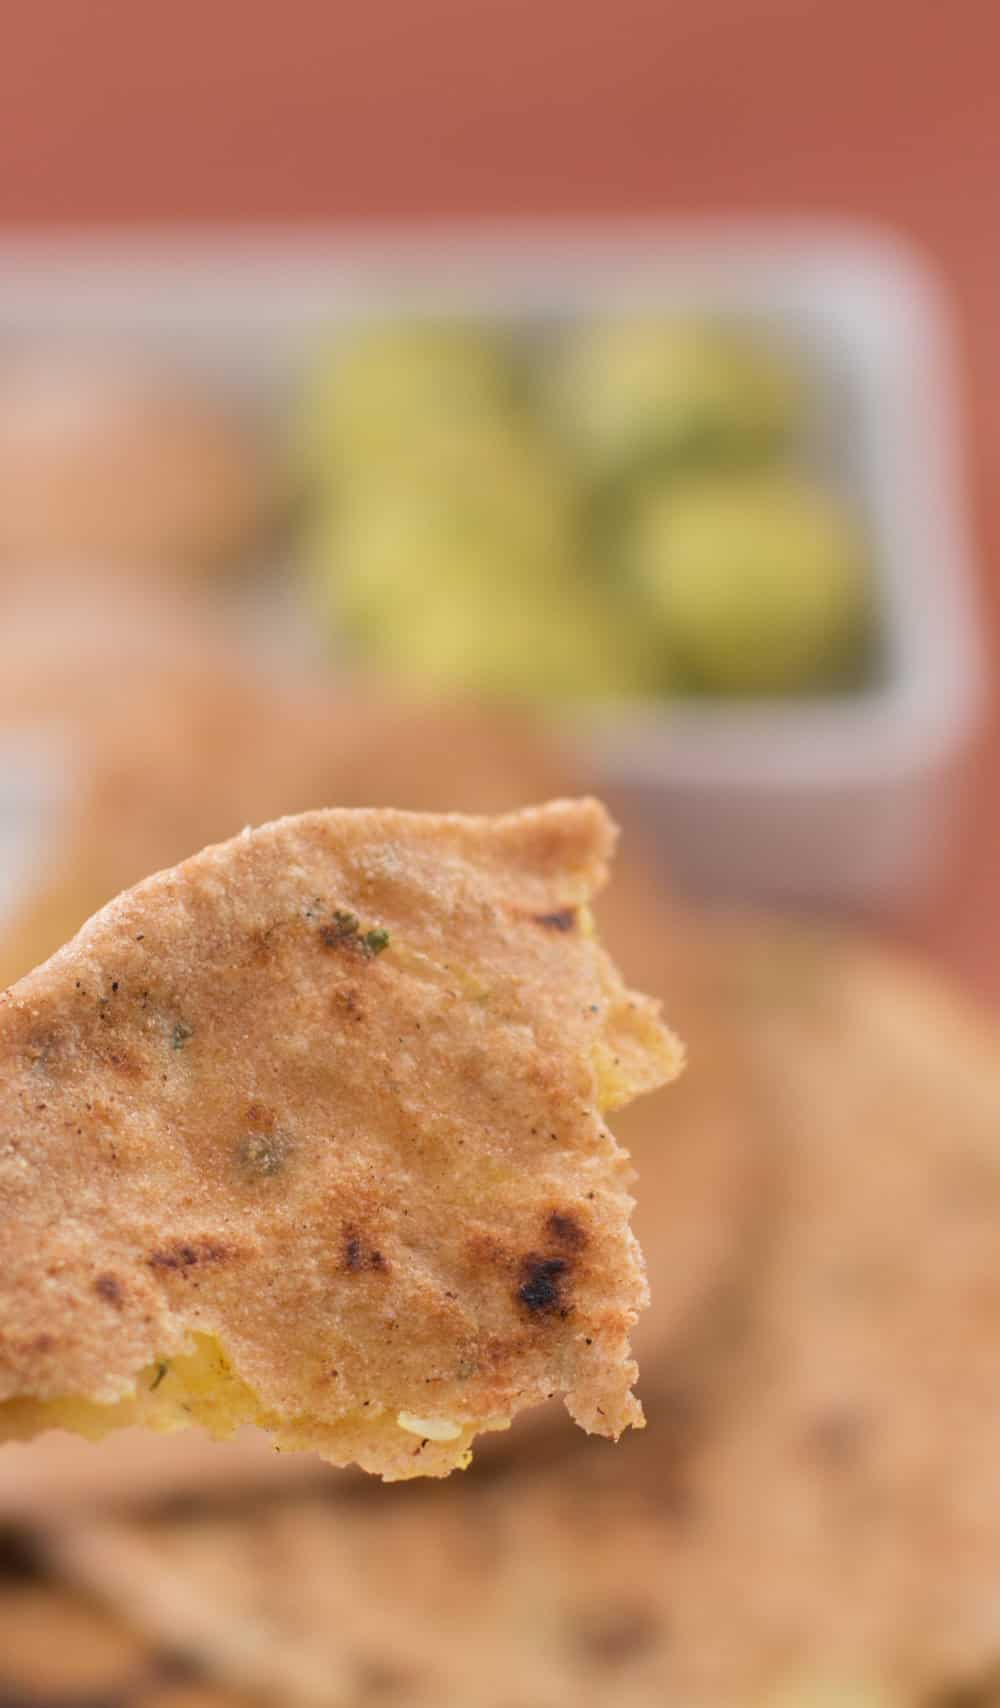 Aloo paratha, potato-filled flatbread, is a delicious Indian bread, perfect for sopping up sauce or eating on its own.